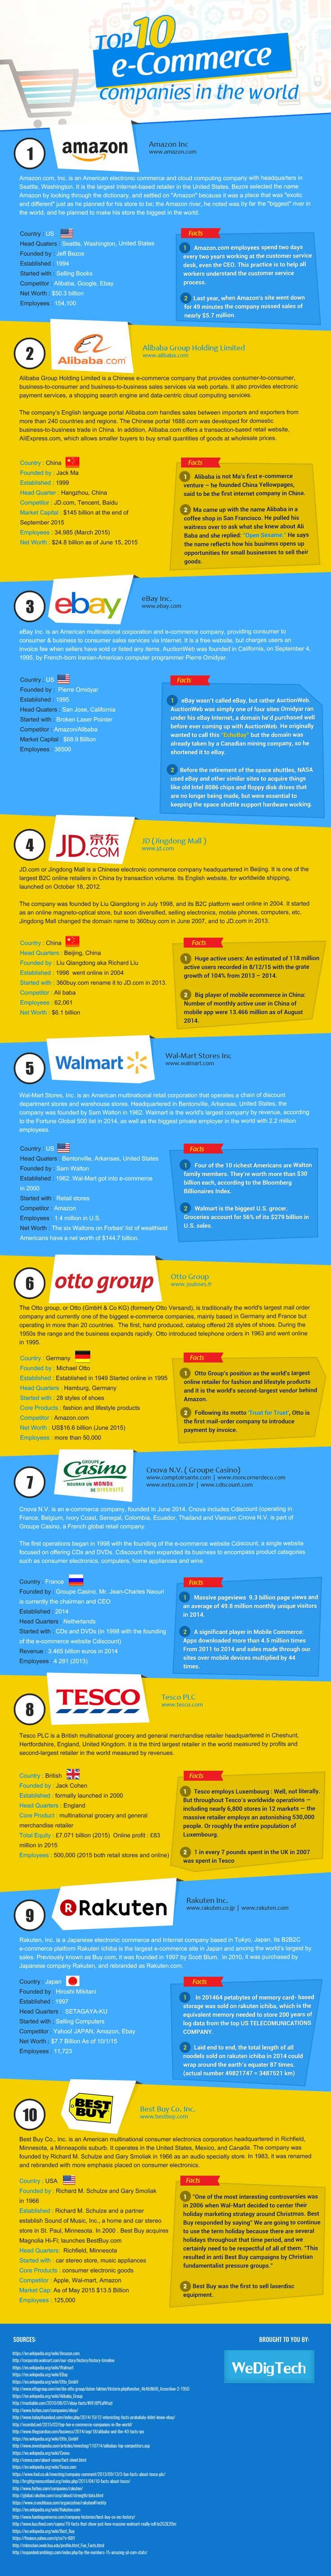 Top 10 eCommerce Companies in the World #infographic #eCommerce #Marketing